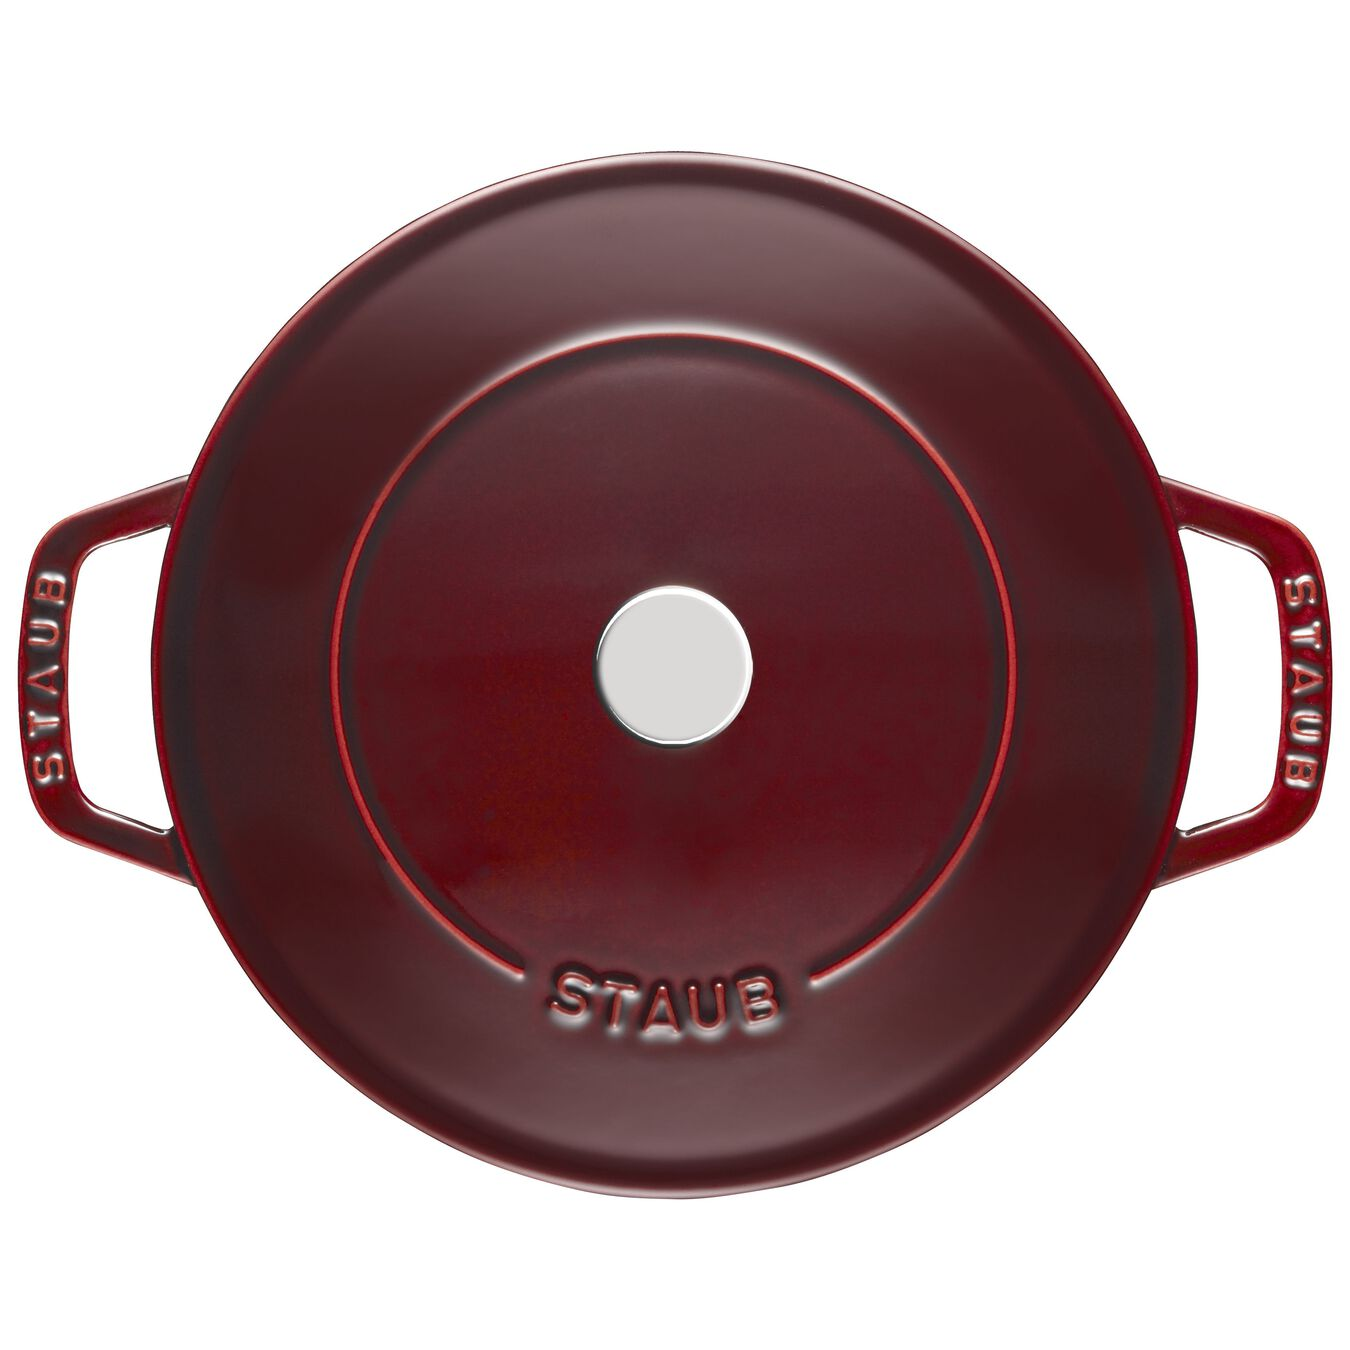 2.5 l Cast iron round Saute pan Chistera, Grenadine-Red,,large 5